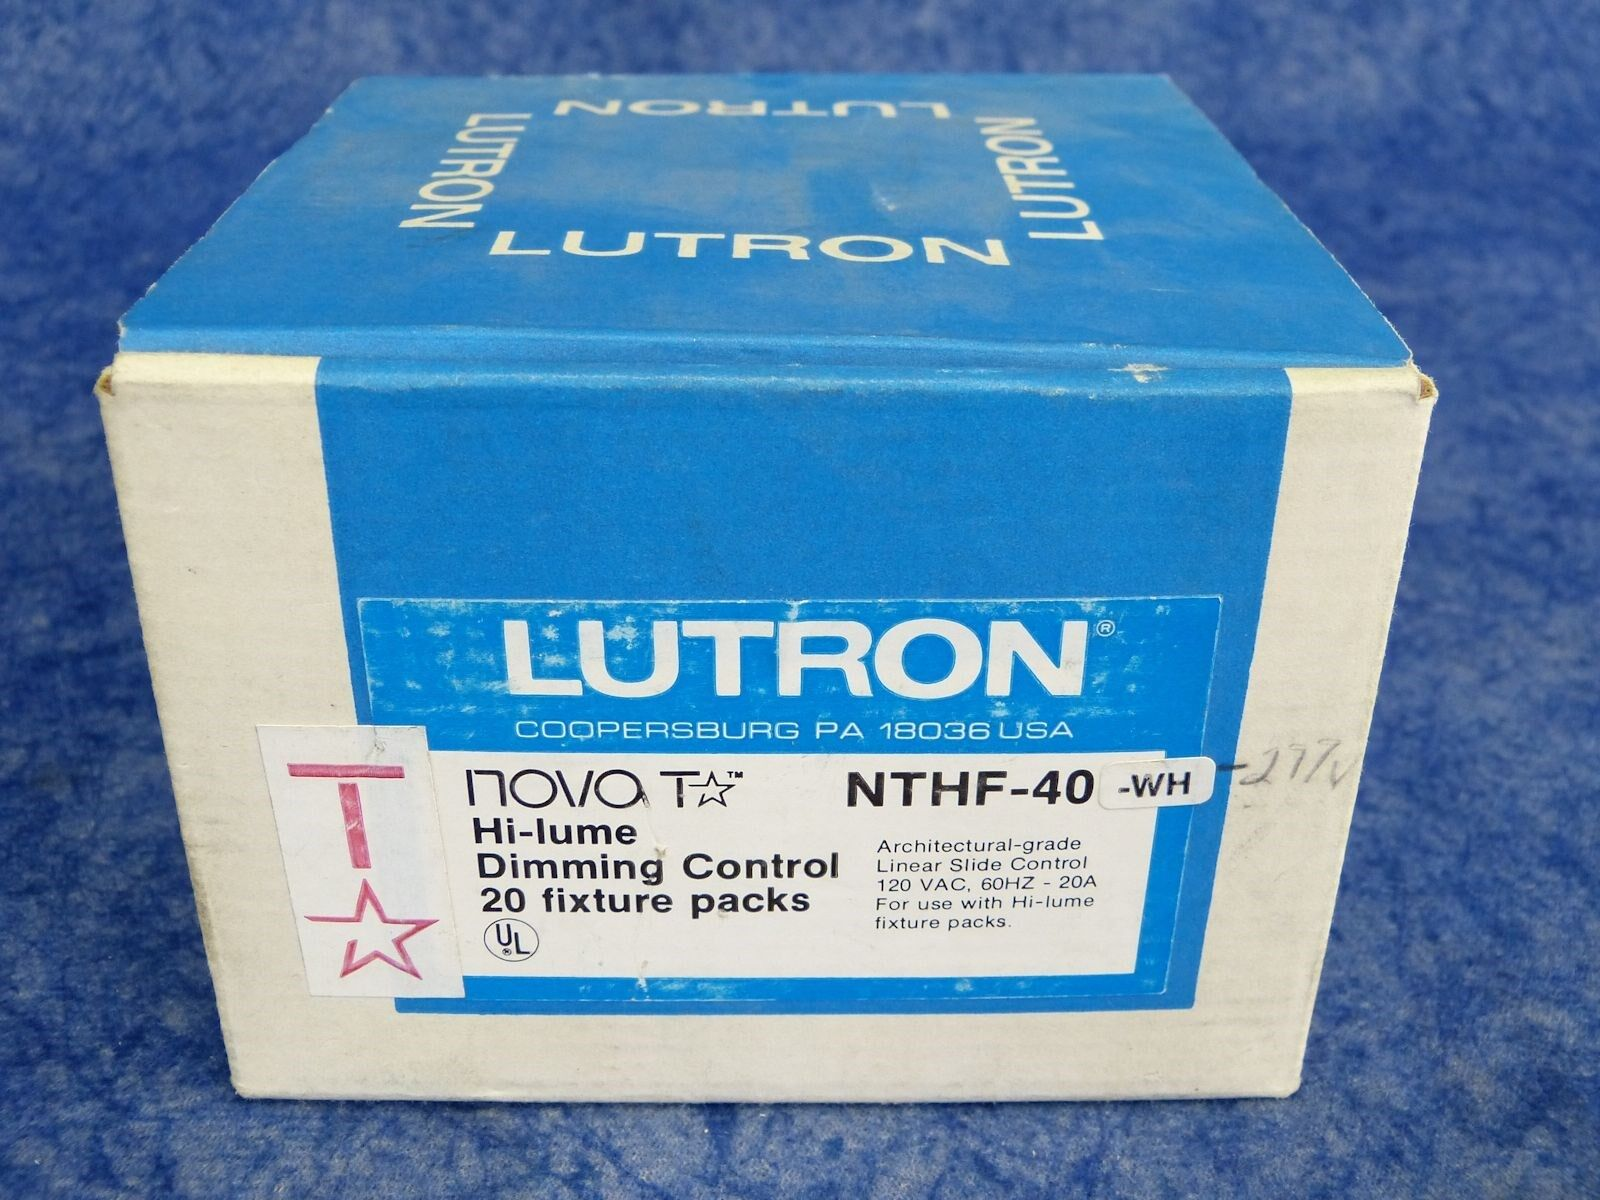 Lutron NovaT / NTHF-40-WH Hi-Lume Dimming Control - White